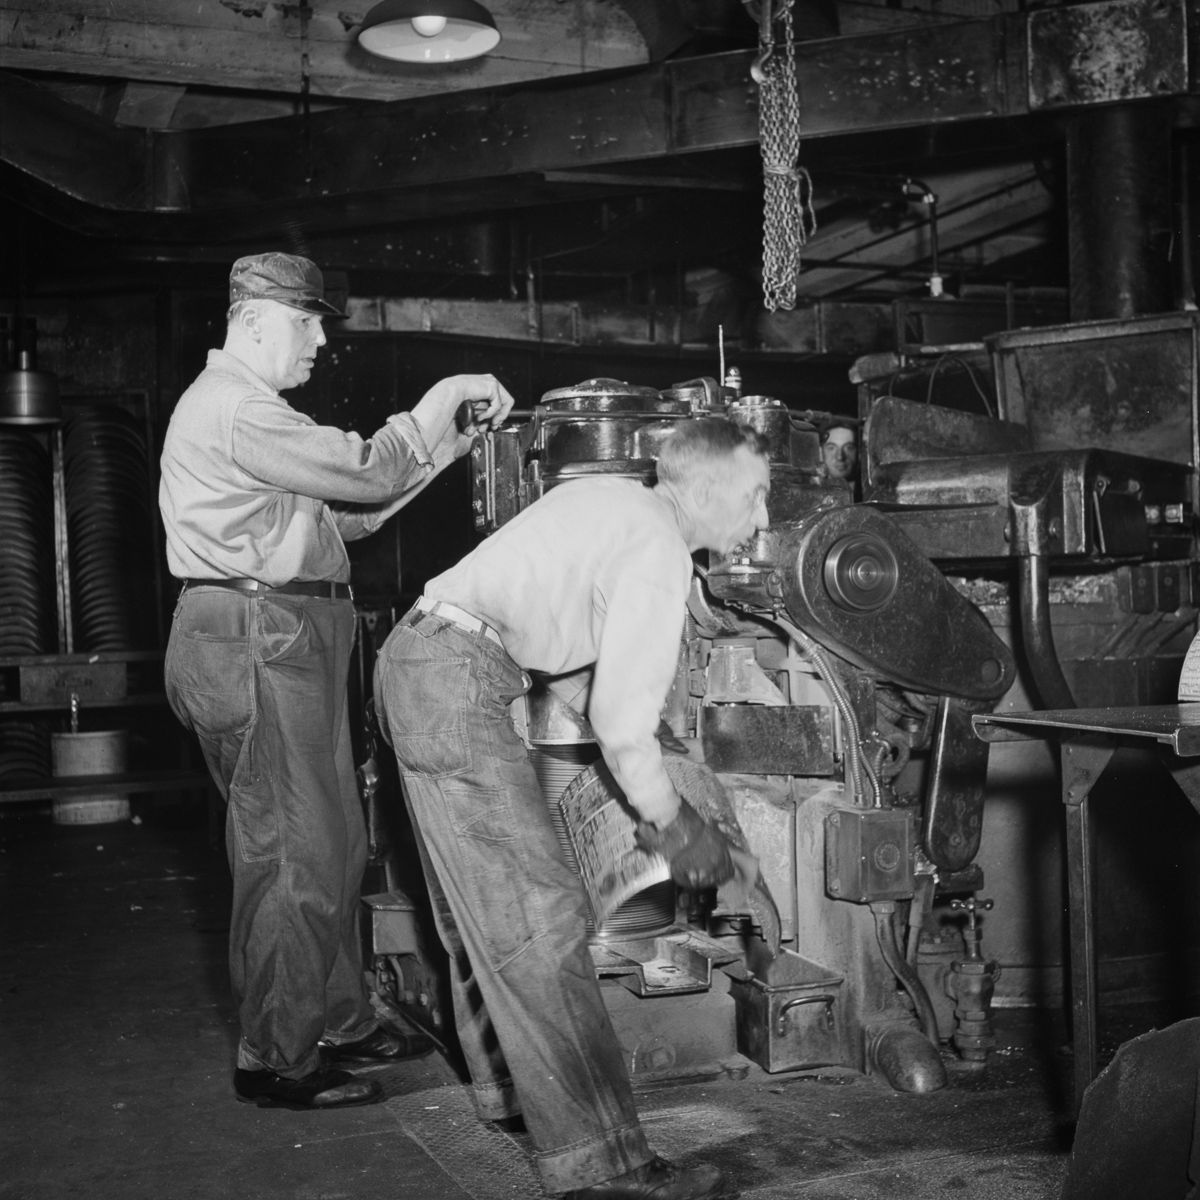 An Autoplate machine is used to cast curved plates for the printing presses from the completed linotype slugs.